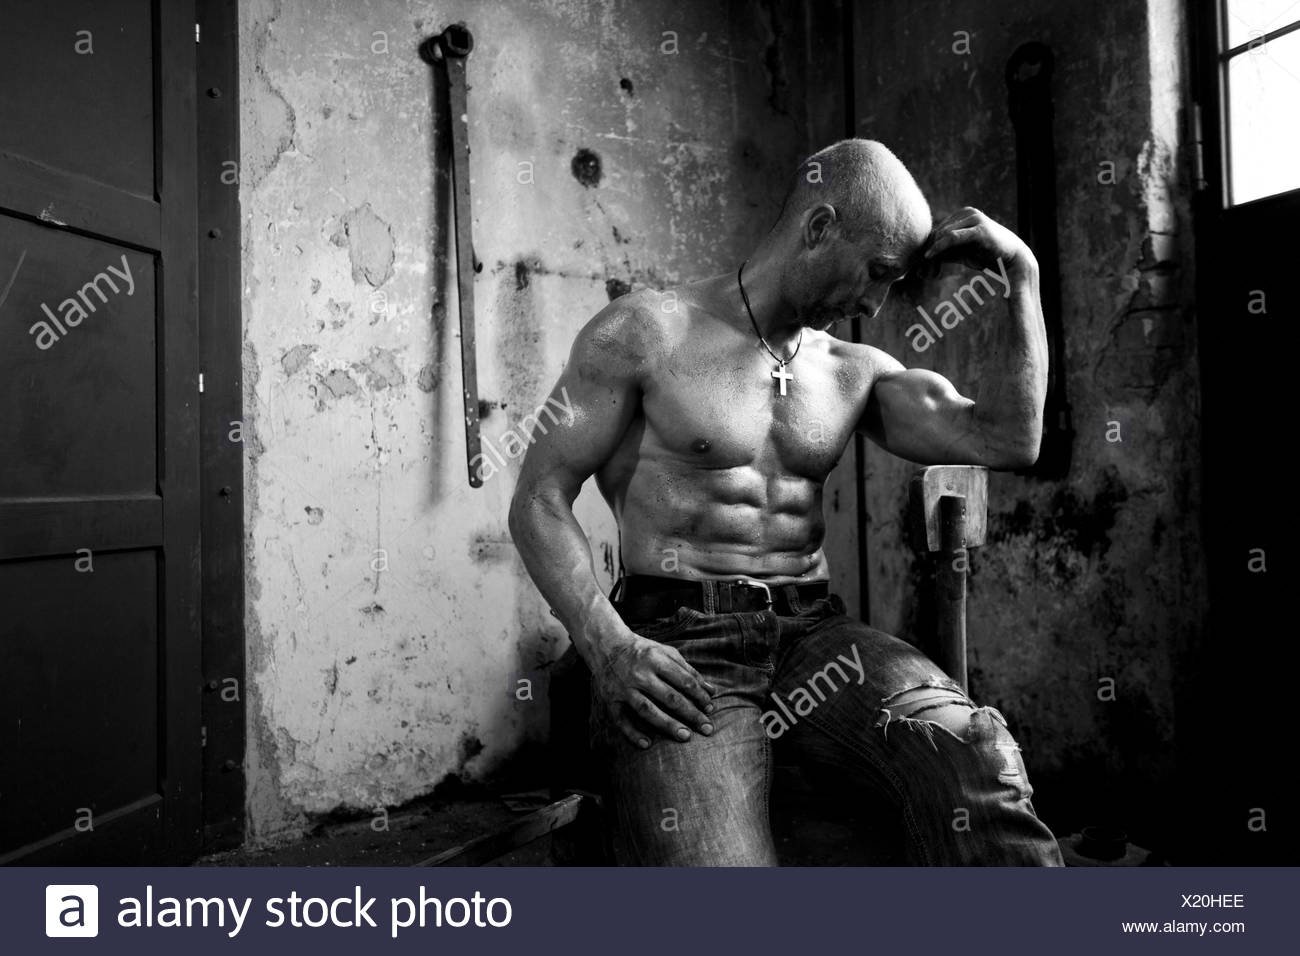 concepts,body cult,hard,guy,sweat,man,strength,muscles,workers,thinkers,Rodin - Stock Image